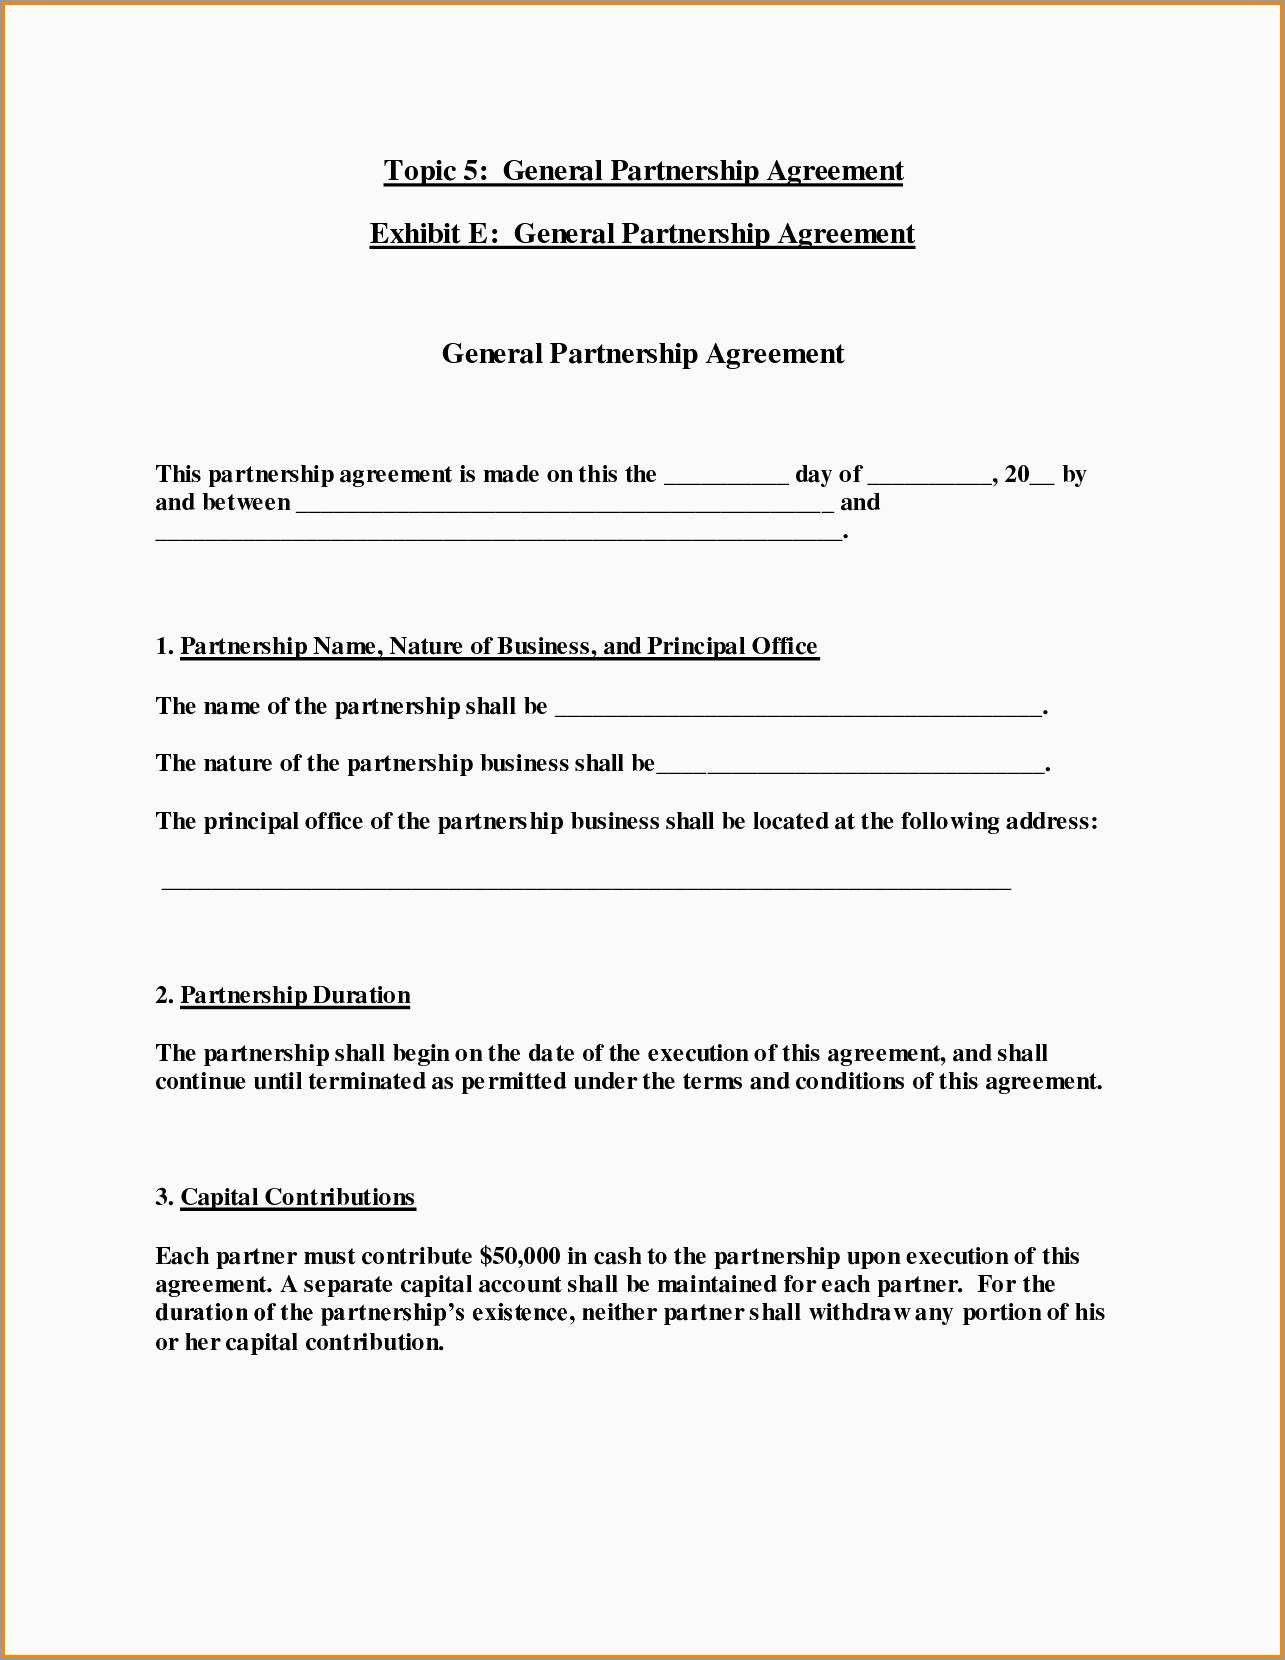 California General Partnership Agreement Template Free Inspirational Throughout Free Simple General Partnership Agreement Template